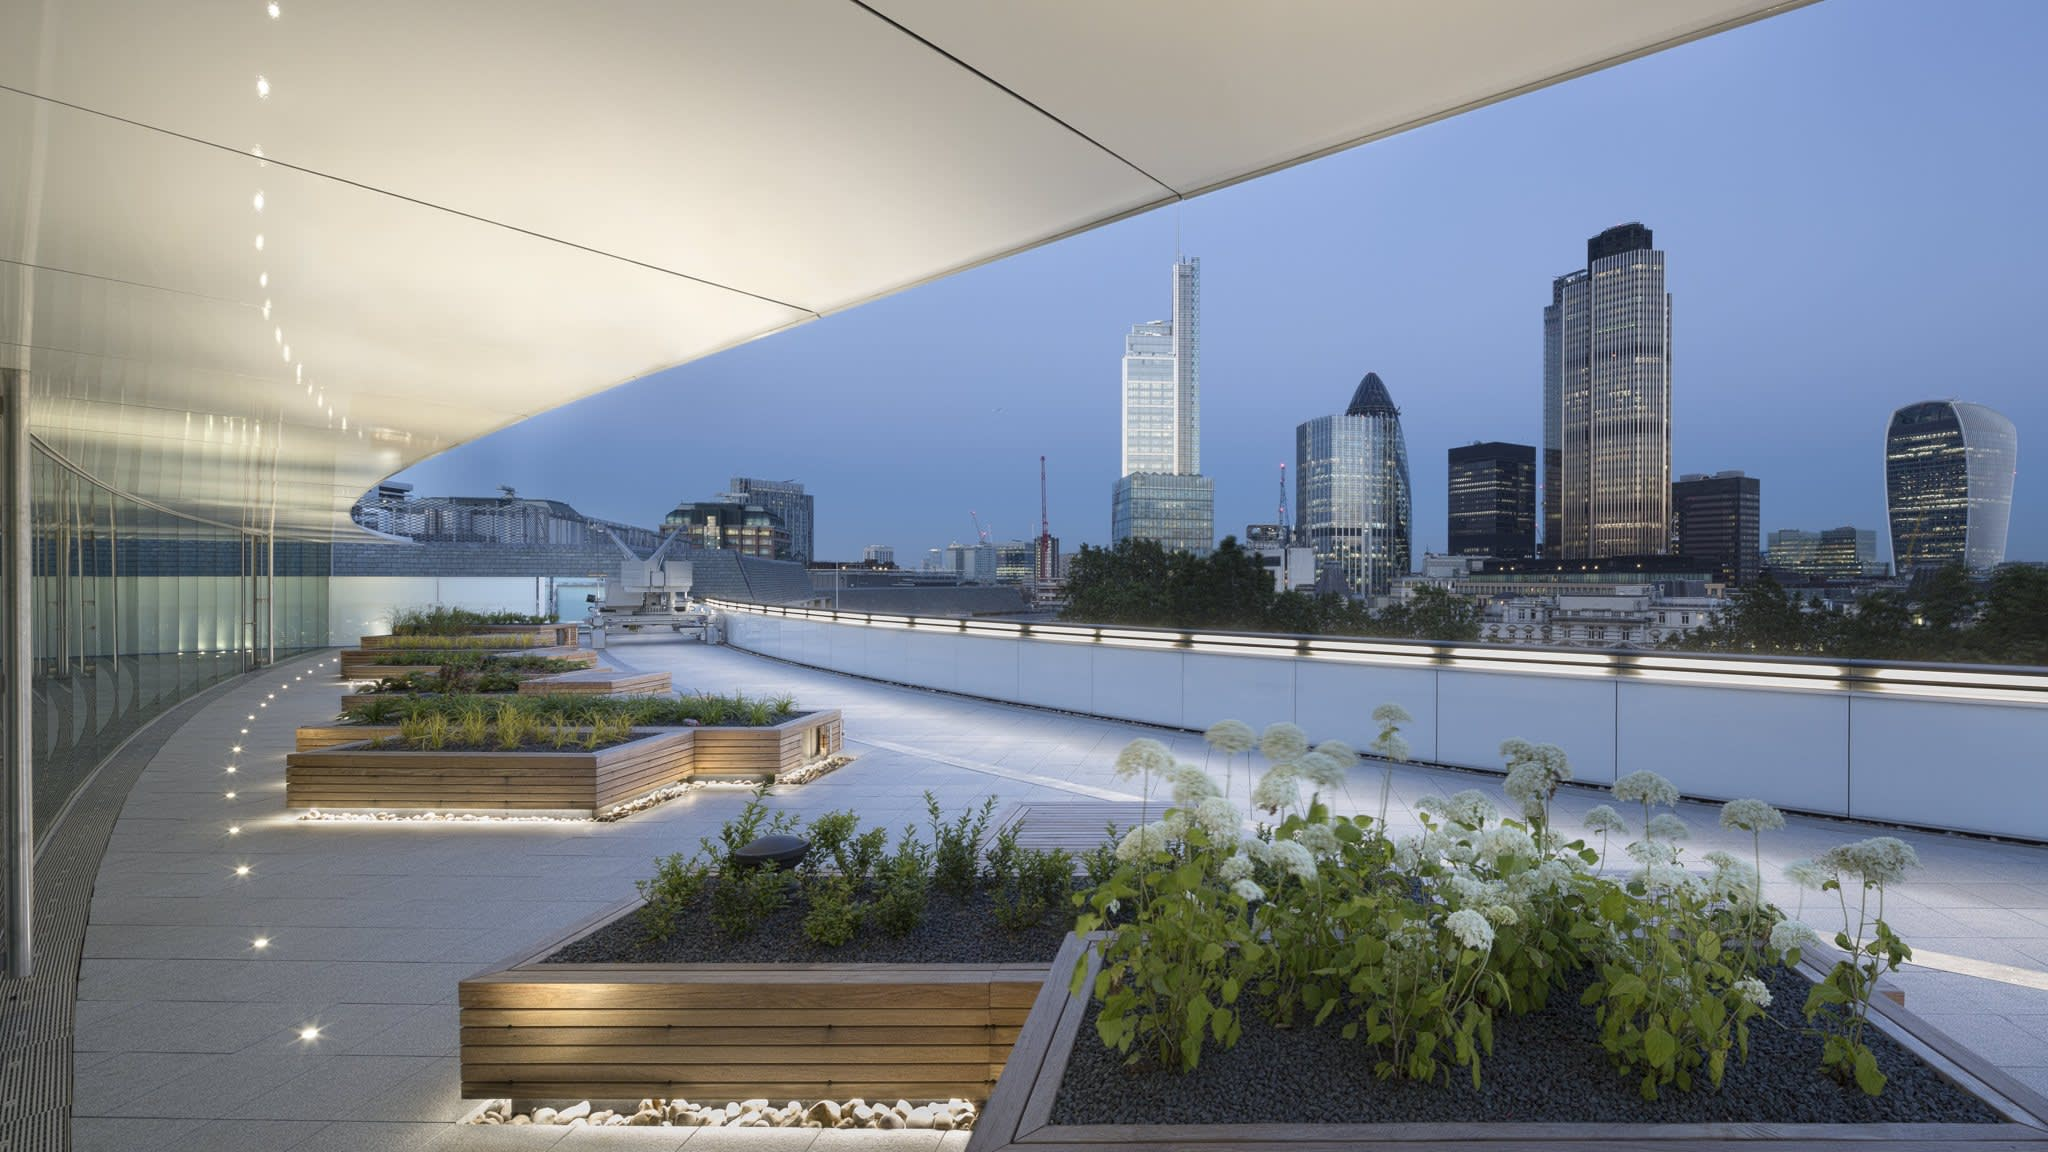 Offices of the future: inside fund managers' glitzy new HQs